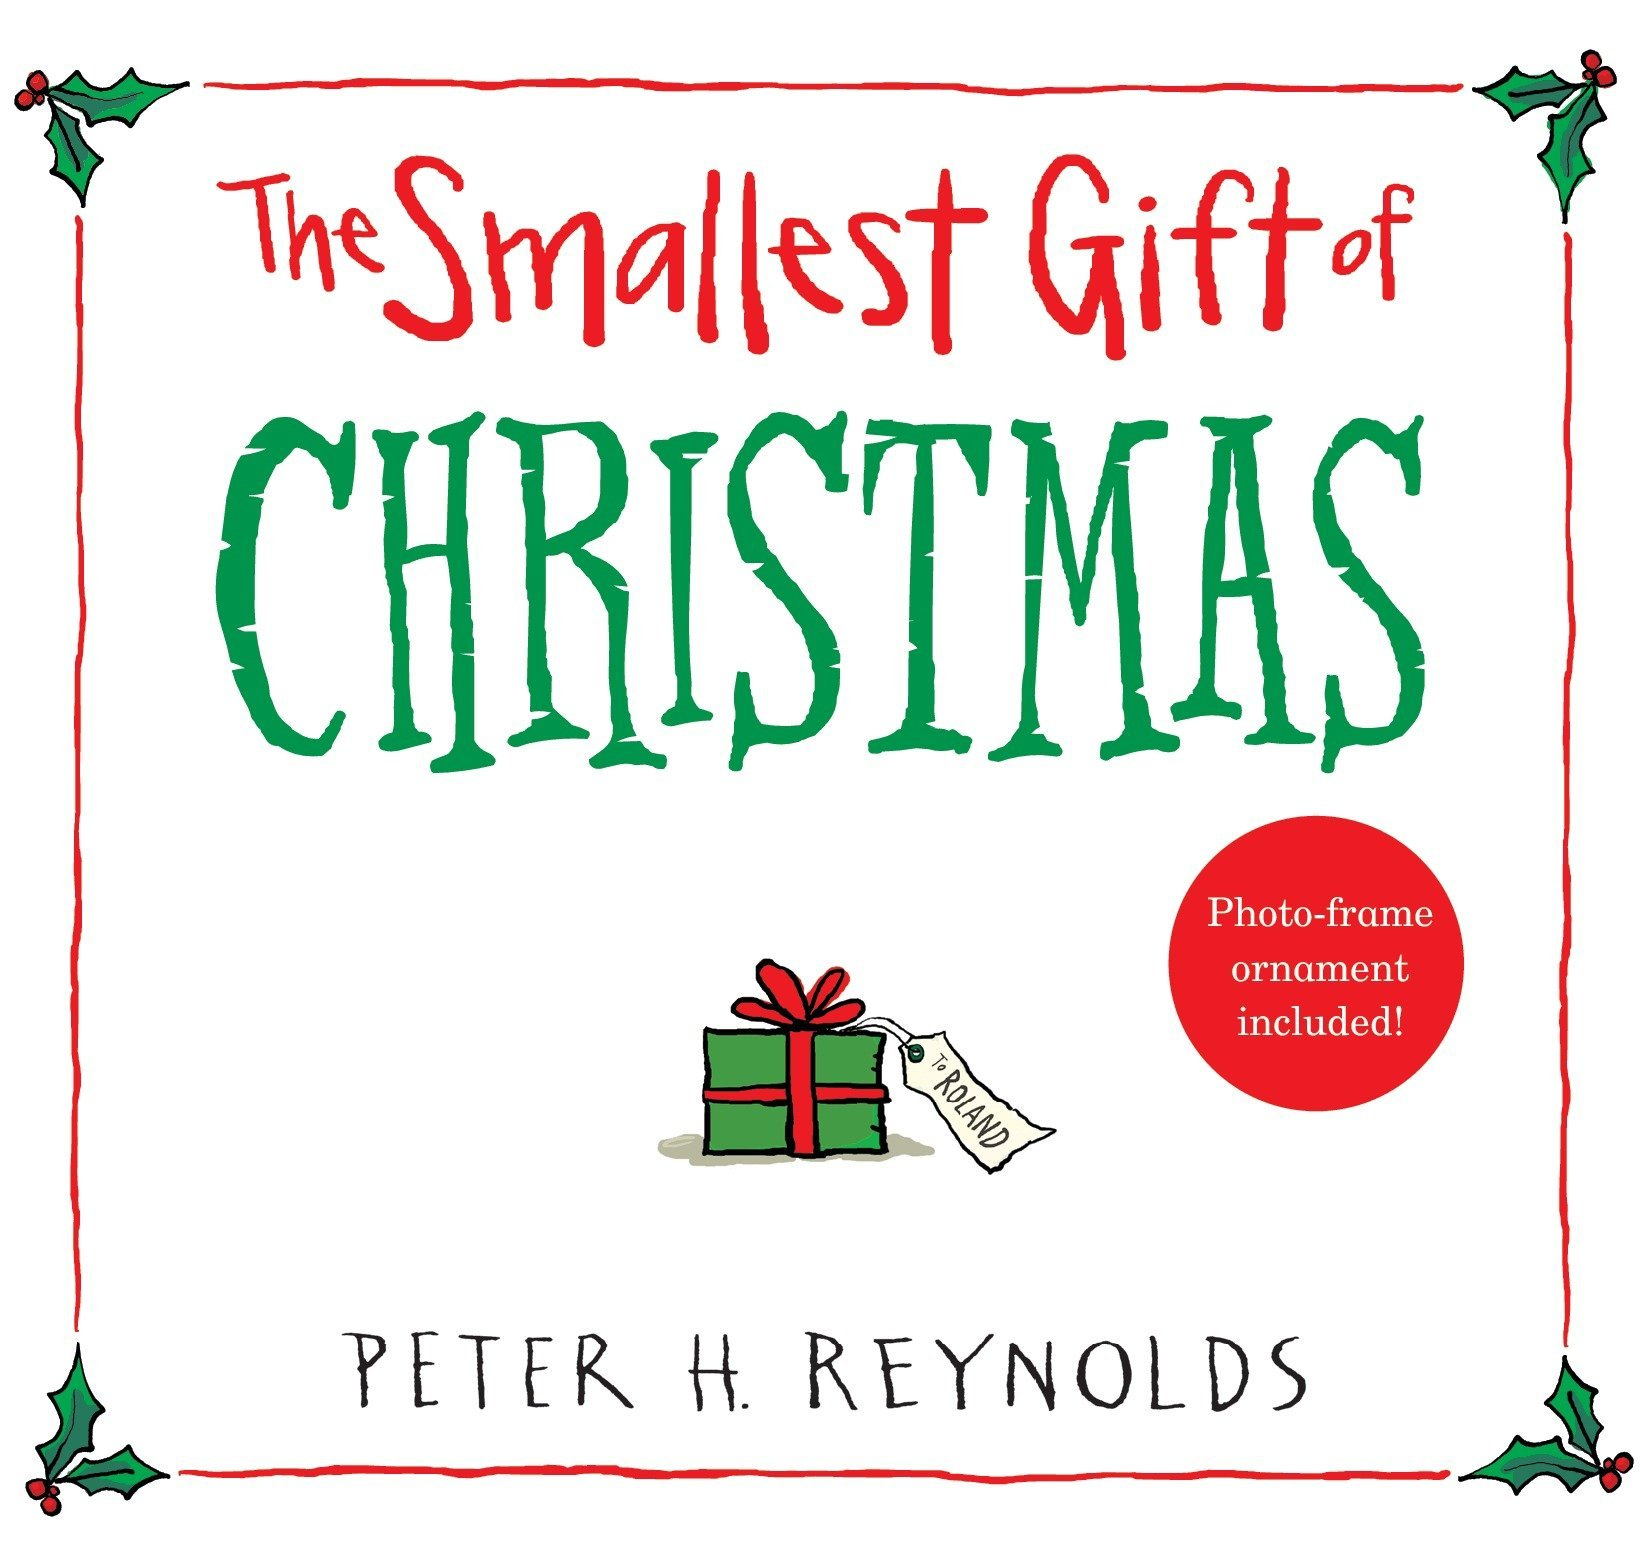 The Smallest Gift of Christmas: Peter H. Reynolds: 9780763679811 ...